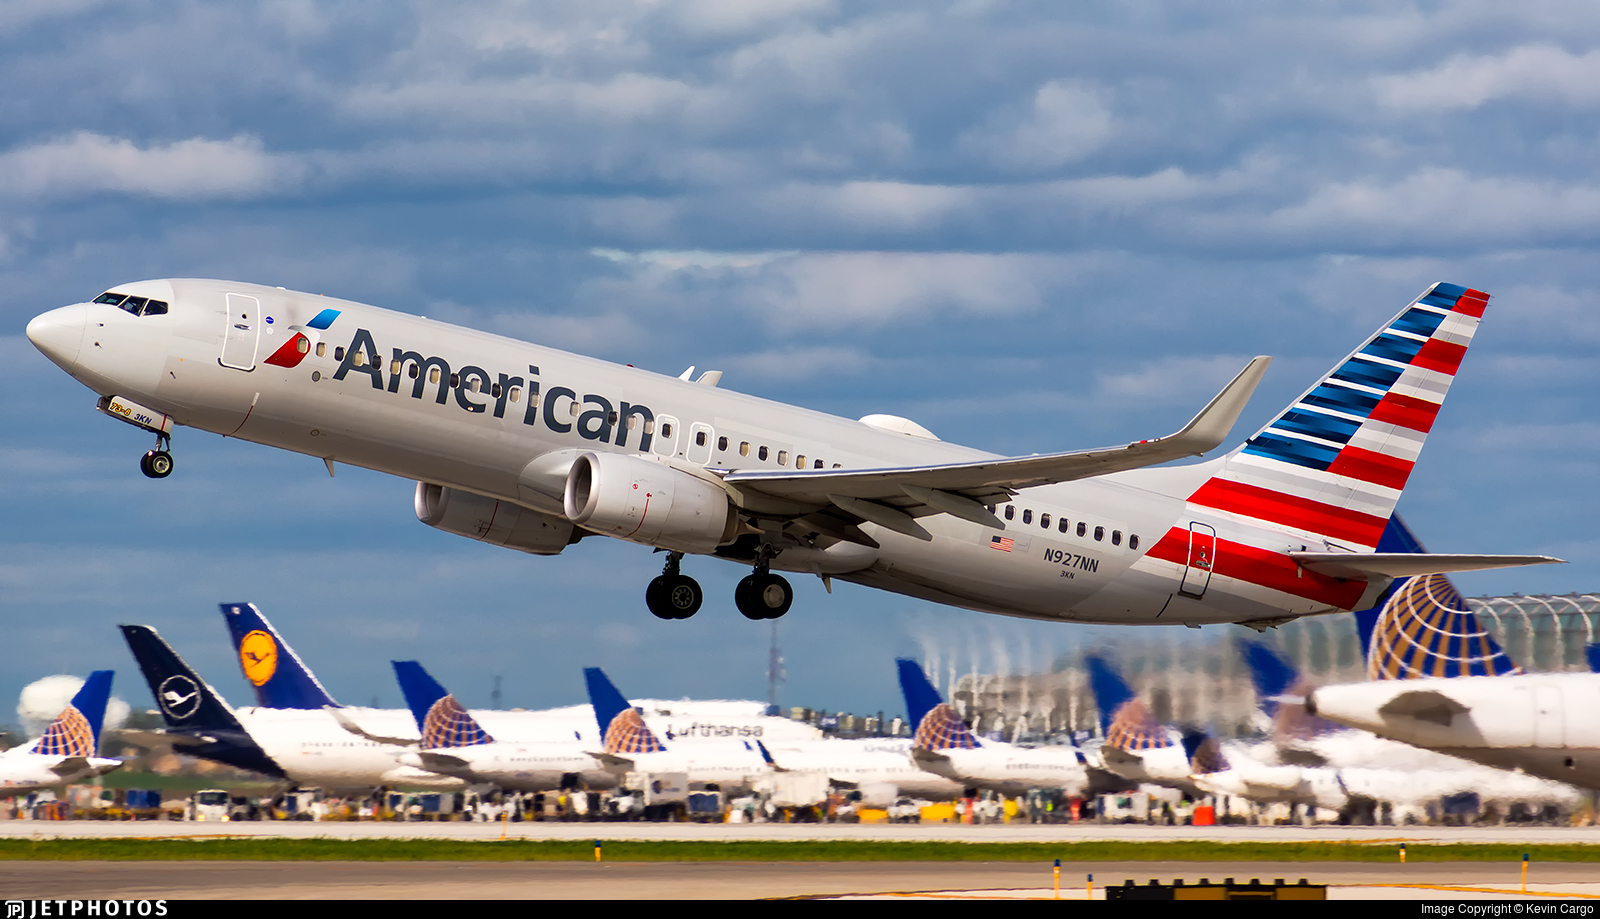 American Airlines ORD O'Hare Chicago origin airport codes history